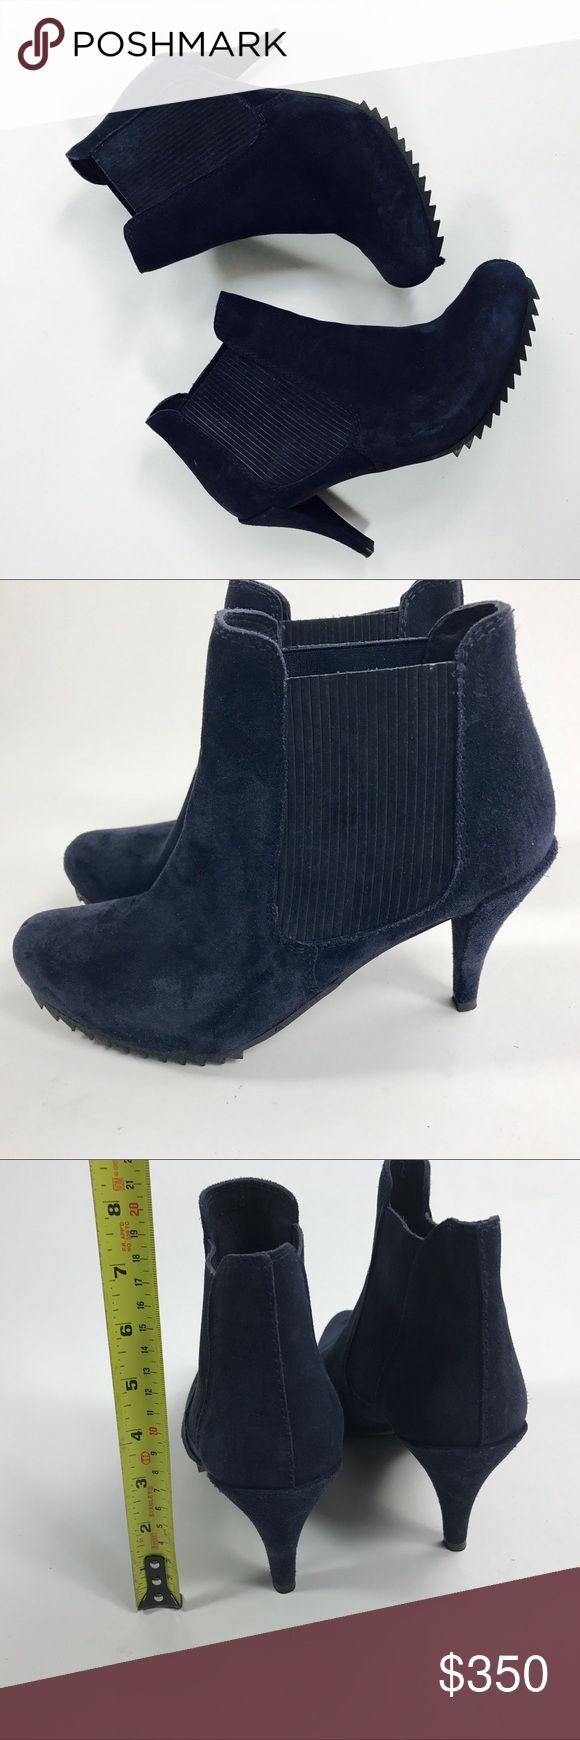 NWOB Pedro Garcia Yoad ankle suede boots sz 40 Gorgeous ankle suede women's boots by Pedro Garcia. Store display. No box nor dust bag. Come from smoke free warehouse. Truly stunning! Pedro Garcia Shoes Ankle Boots & Booties